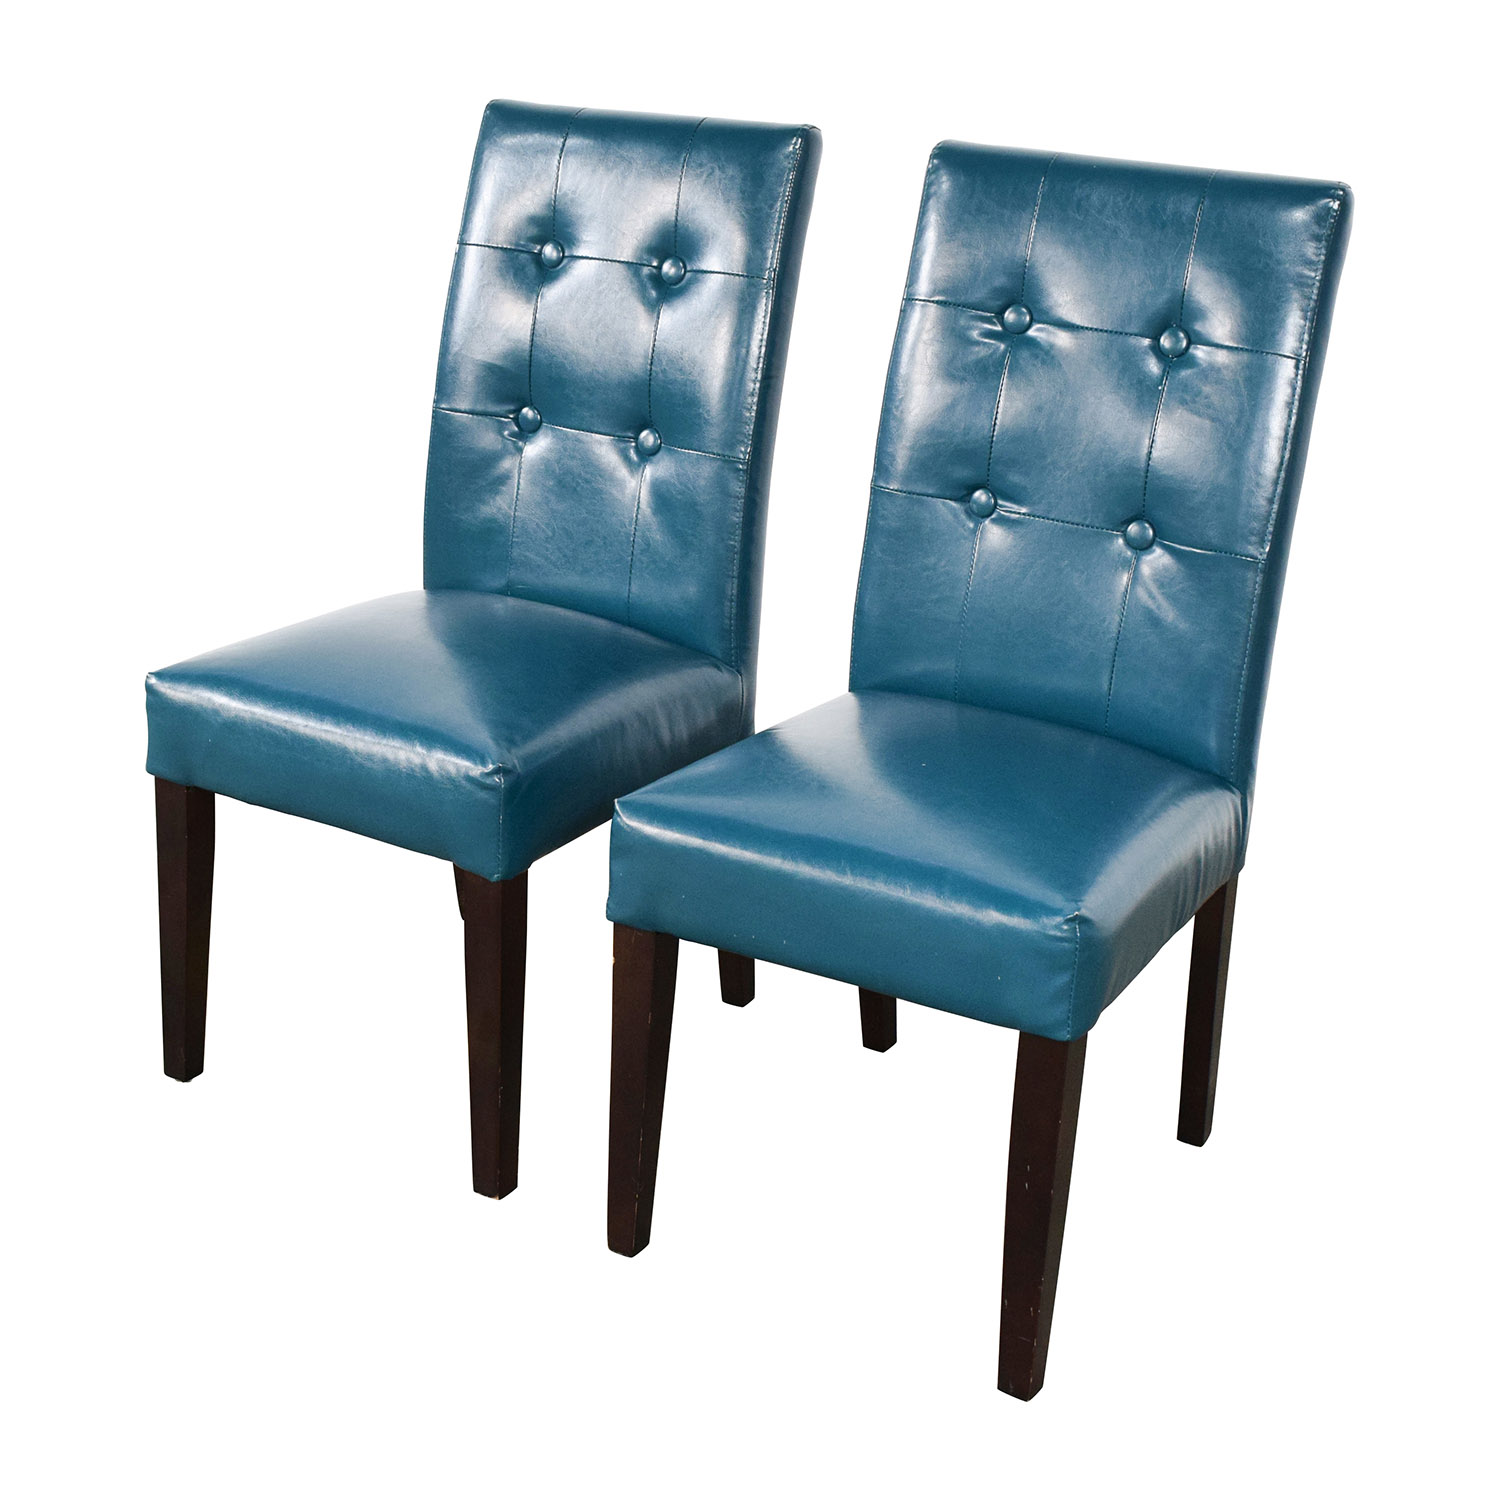 Pier One Dining Chairs: Pier 1 Imports Pier 1 Imports Mason Collection